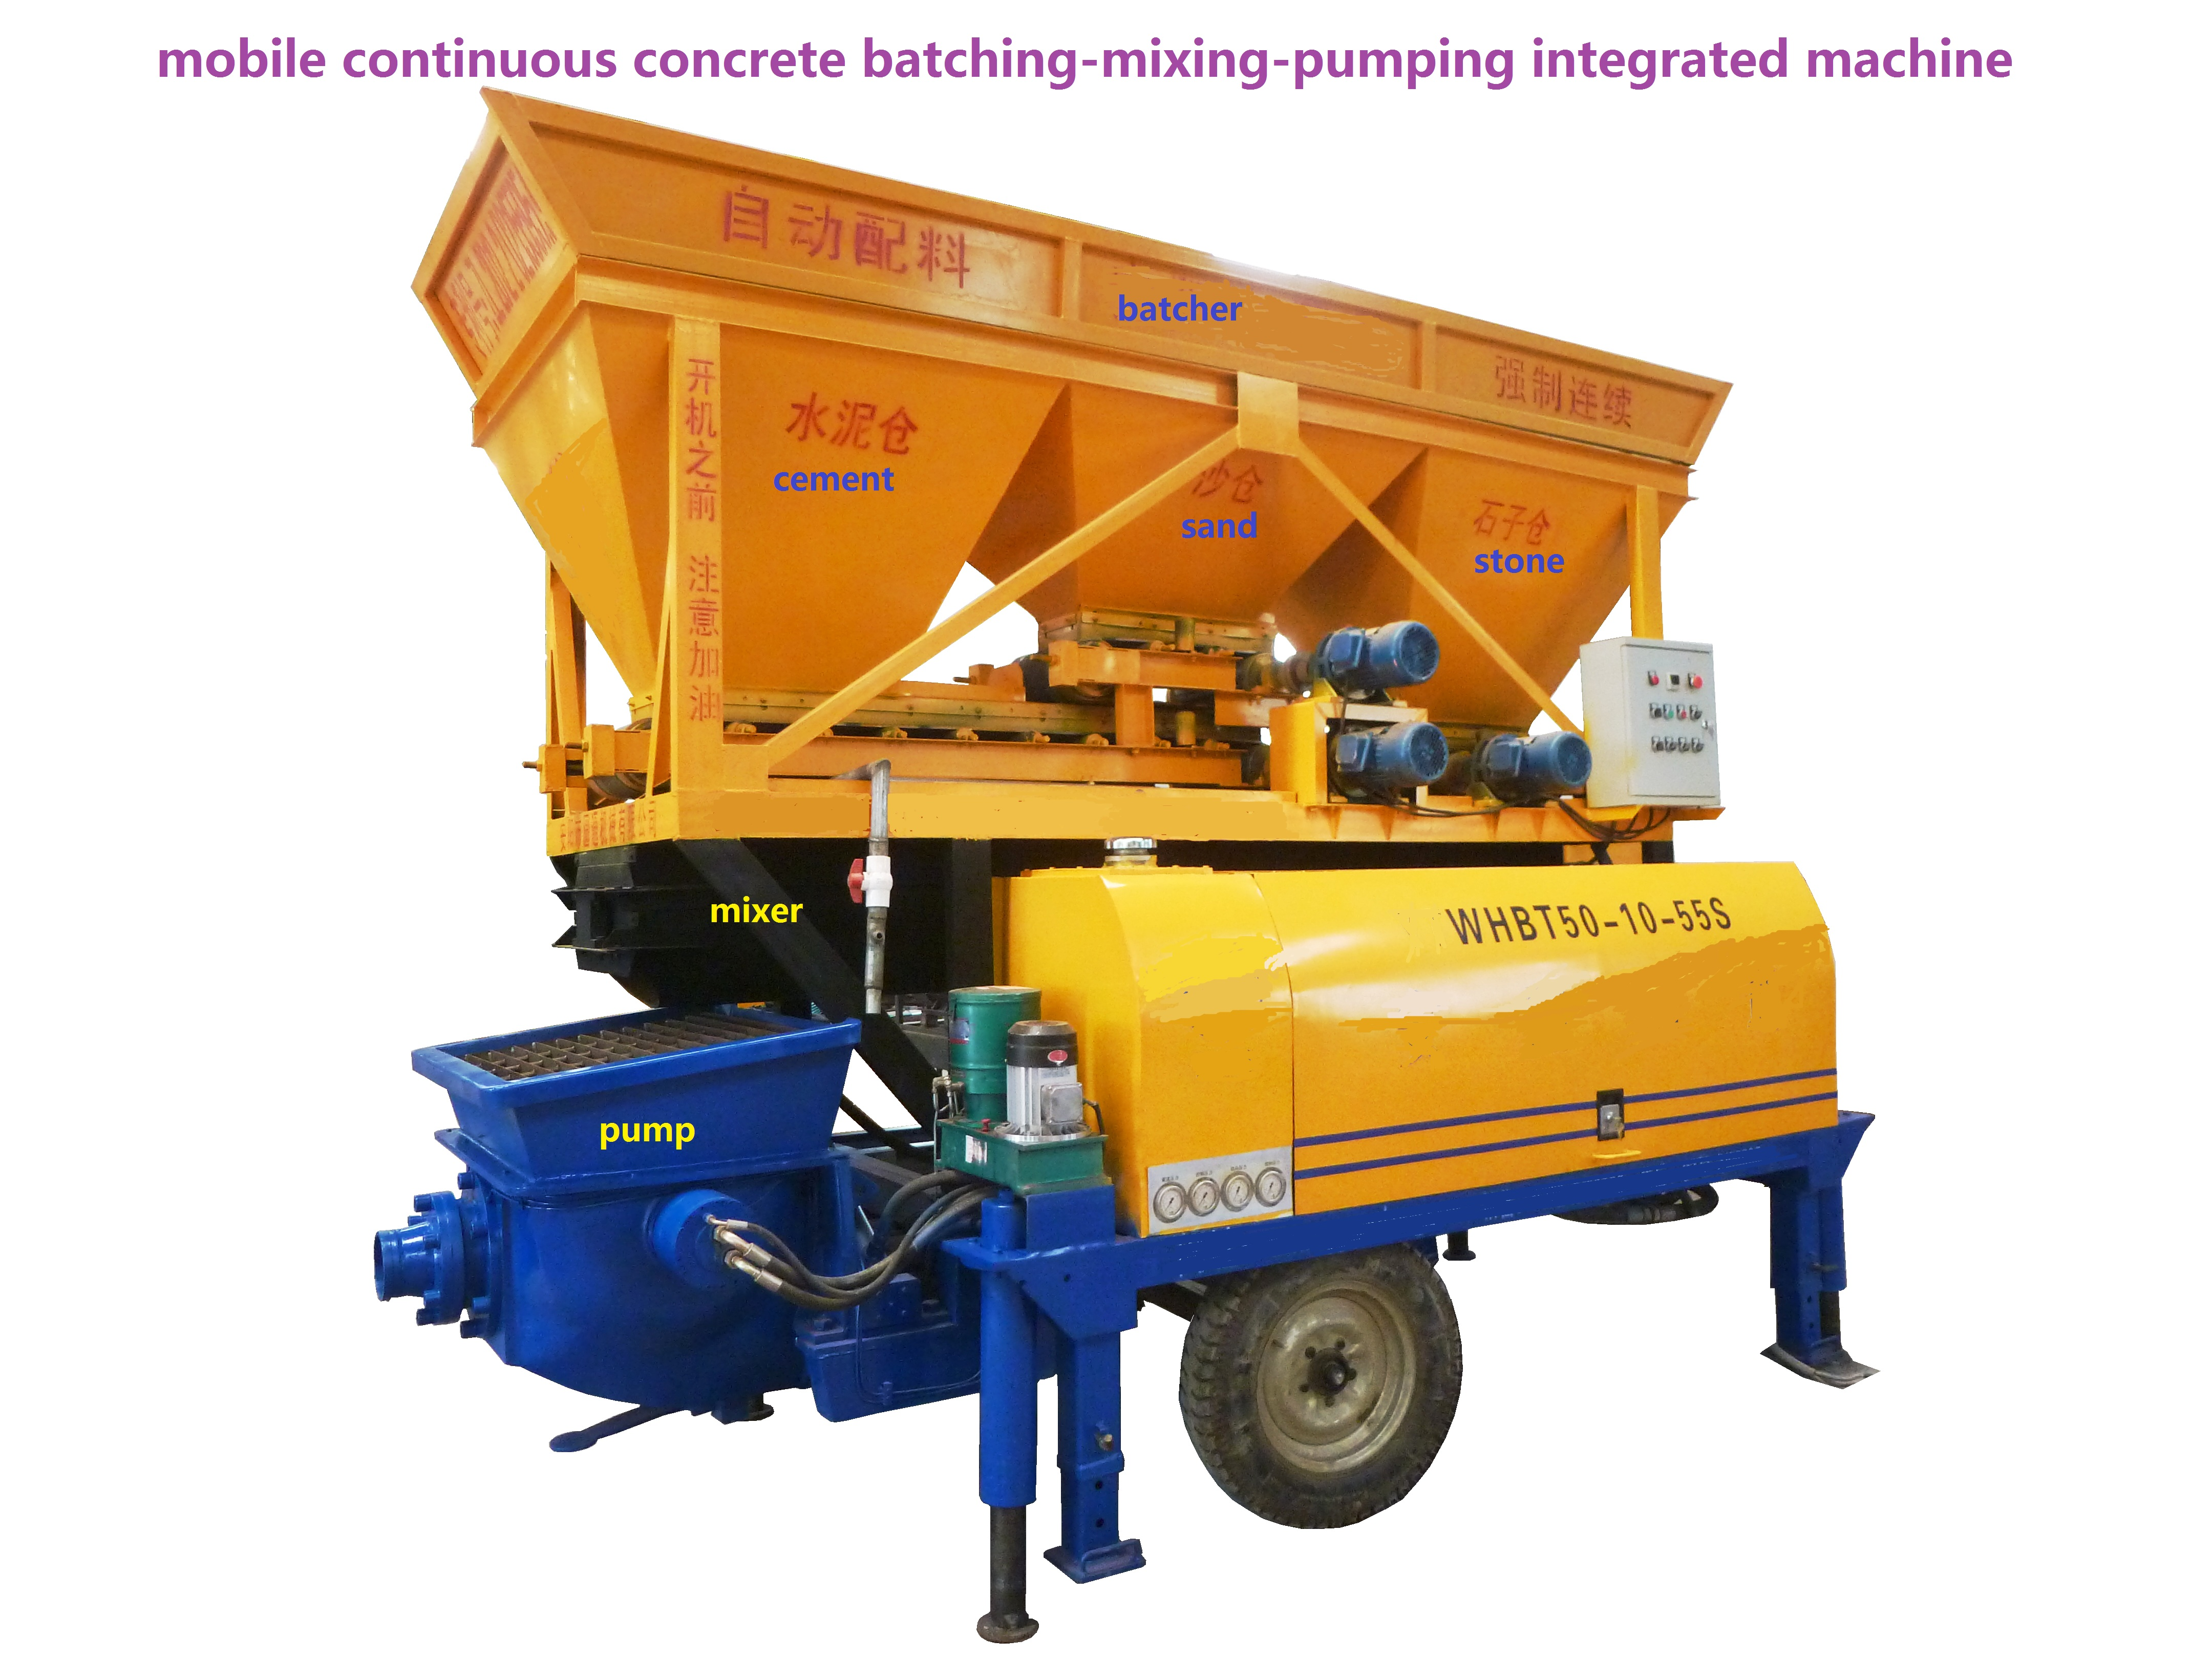 small mobile continus concrete mixing /pumping machine